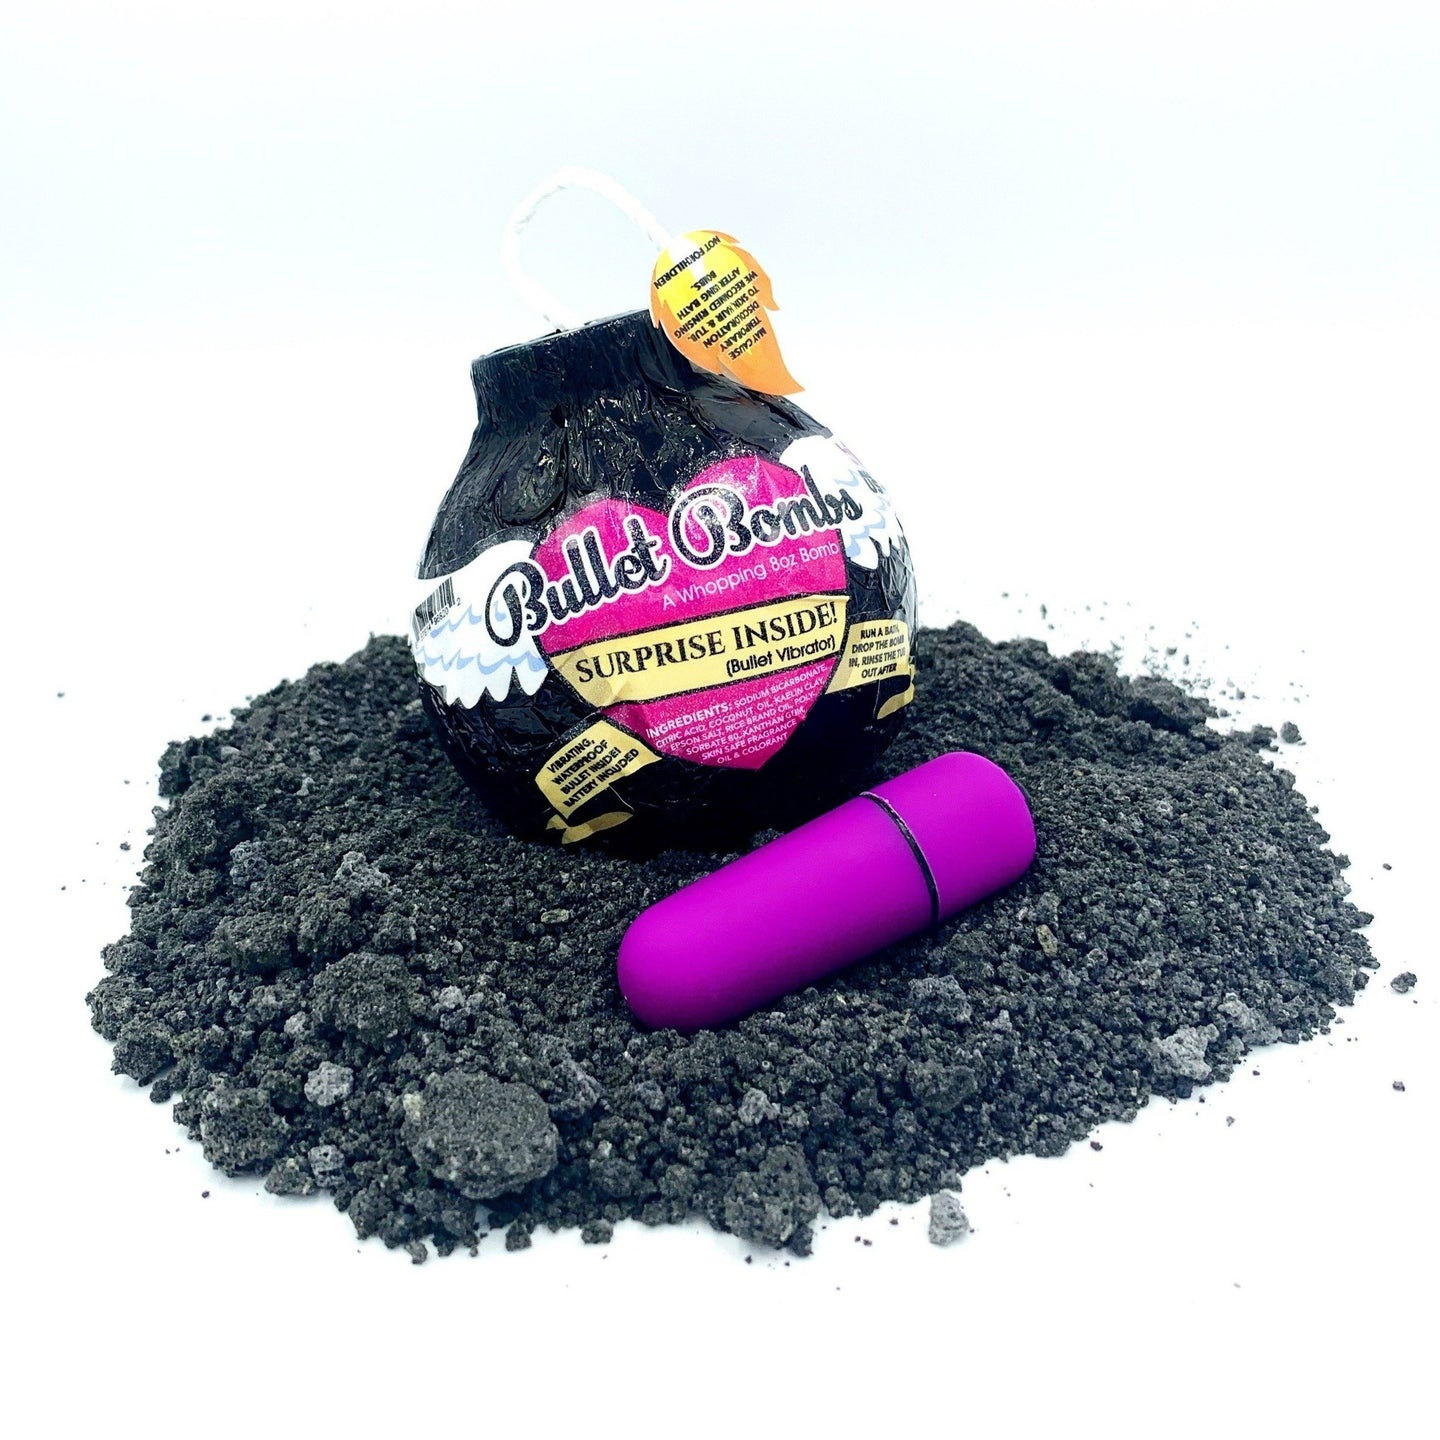 Bath Bomb Bullet ~ Mystery Toy for the Woman in your life!